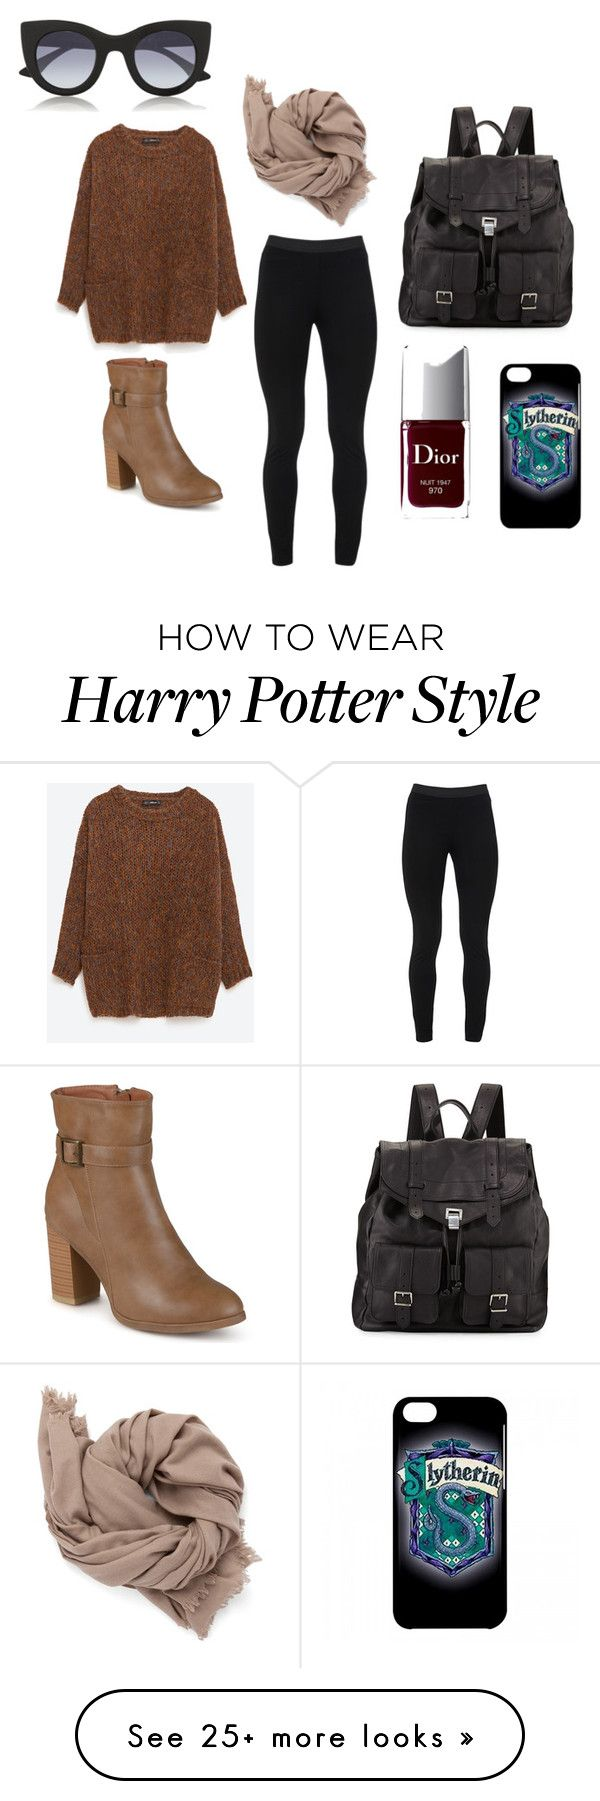 """""""Comfy but cute"""" by daisylynnr on Polyvore featuring Zara, Peace of Cloth, Proenza Schouler, Christian Dior, Journee Collection and Thierry Lasry"""